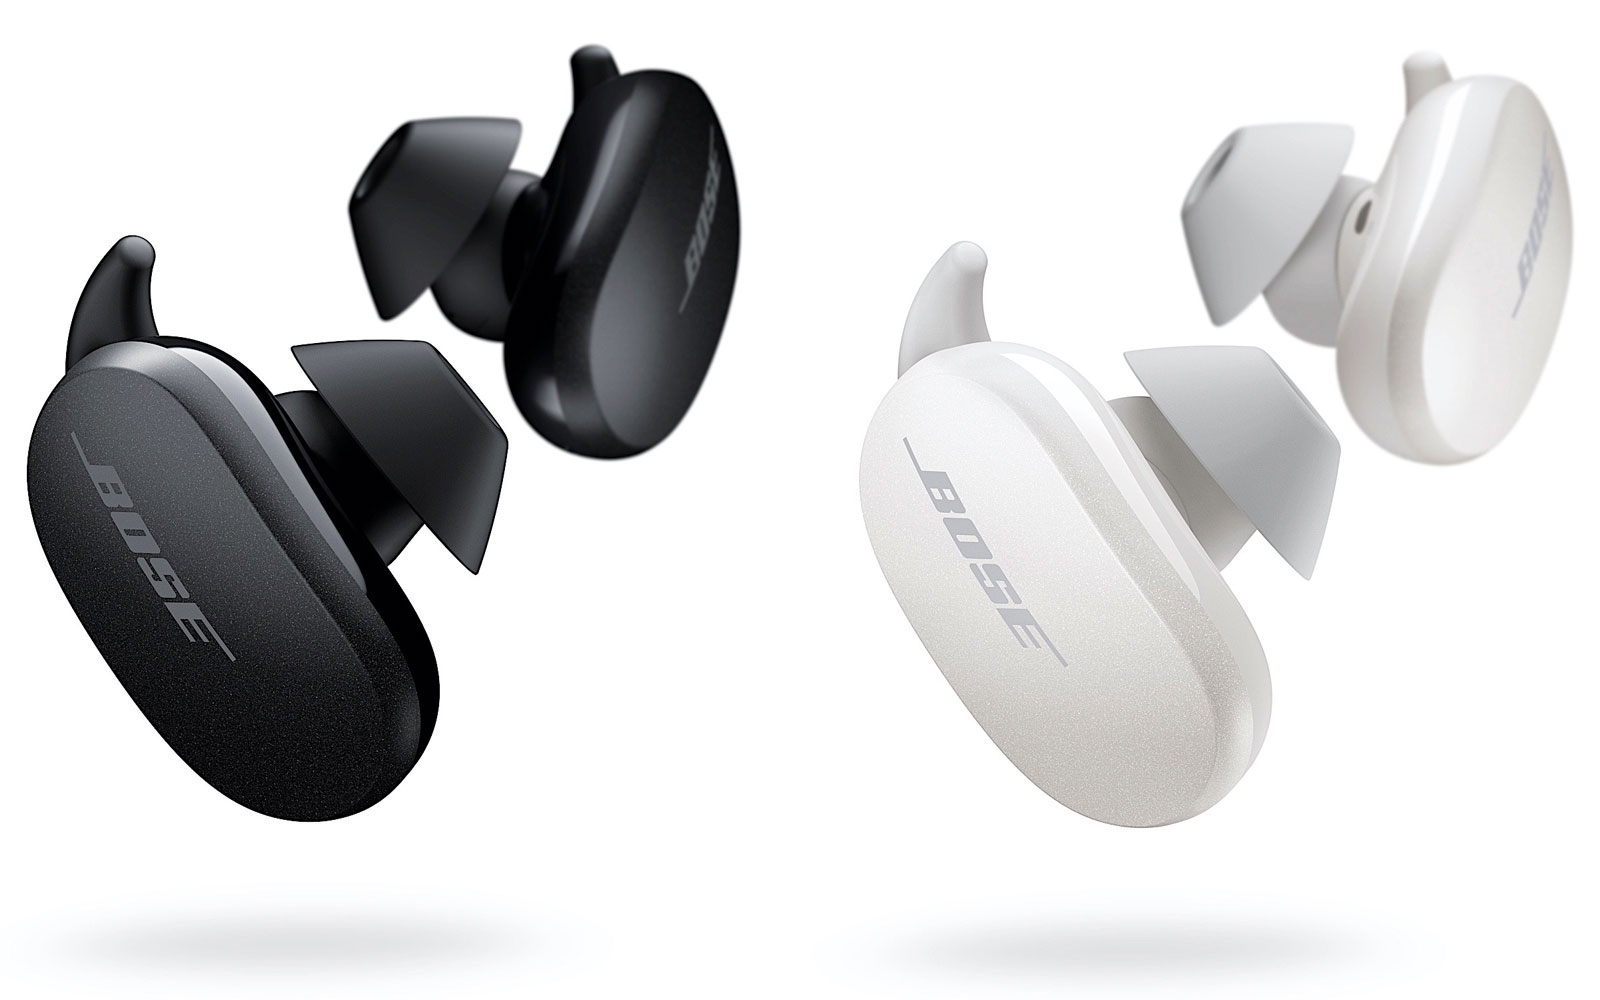 Bose QuietComfort Earbuds offer powerful noise cancellation for $280   DeviceDaily.com